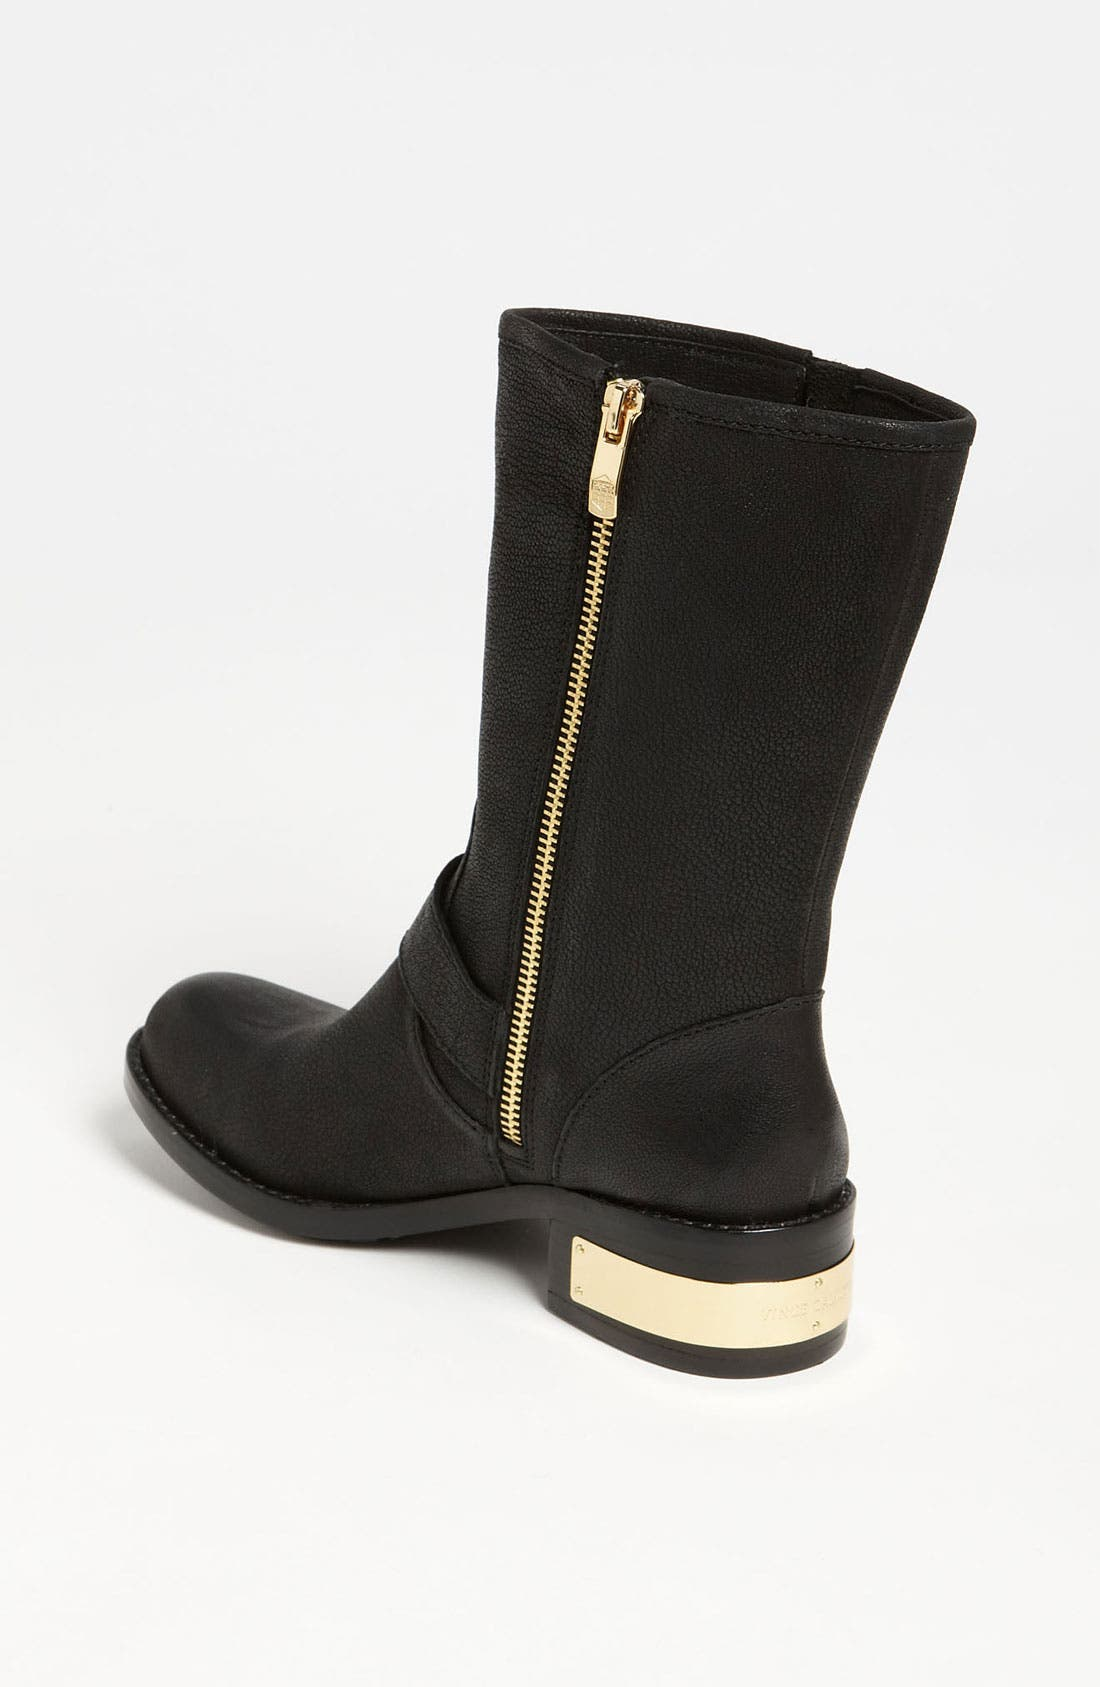 VINCE CAMUTO,                             'Winchell' boot,                             Alternate thumbnail 3, color,                             001